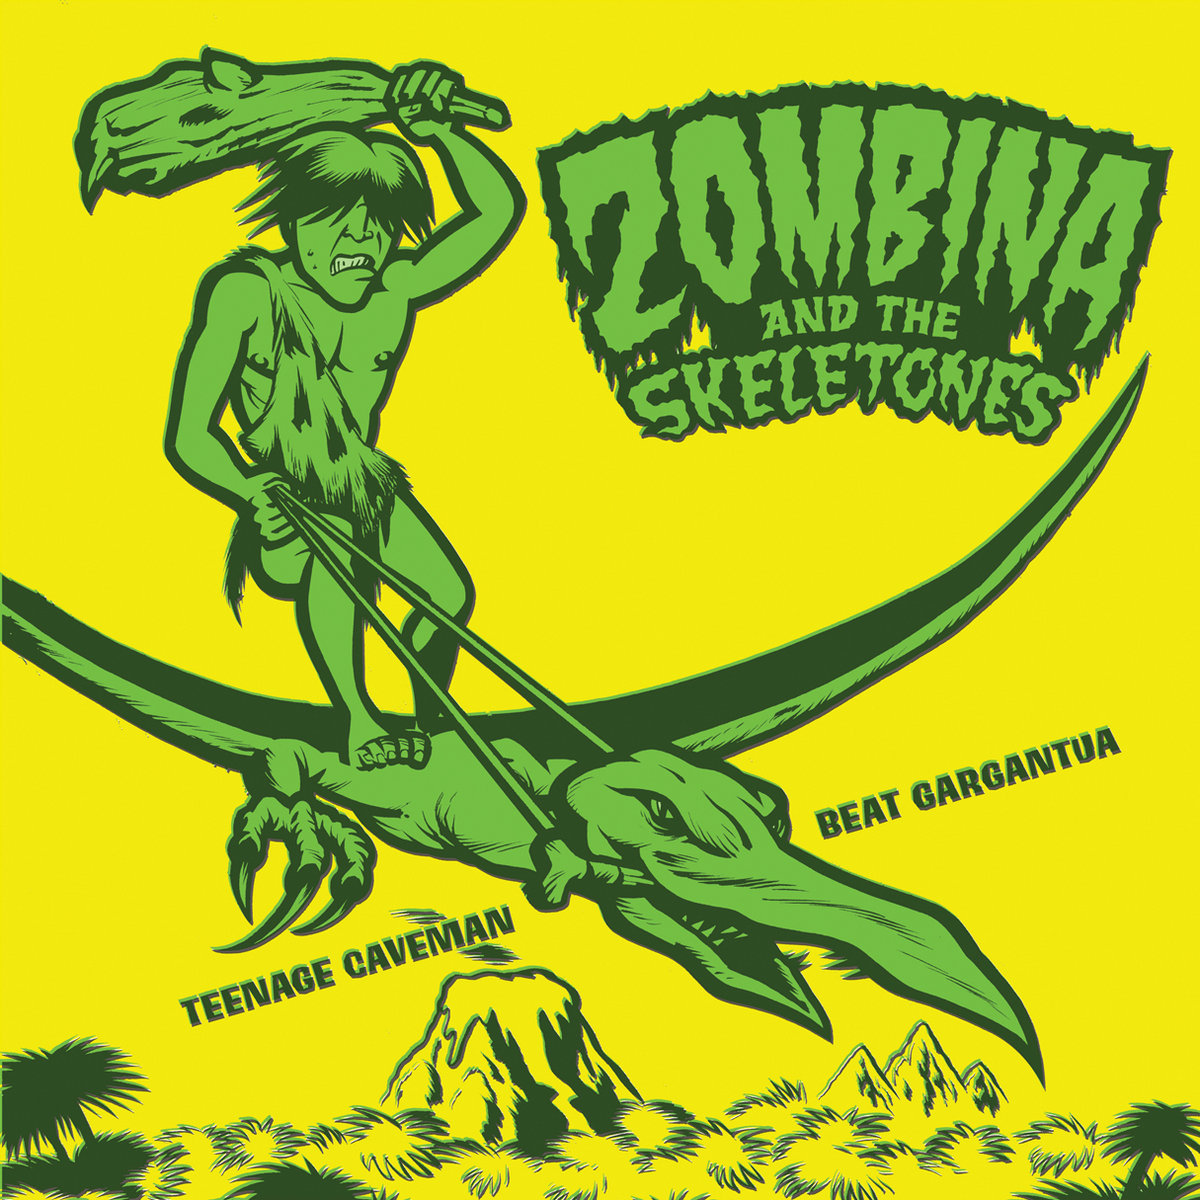 zombina and the skeletones discography download